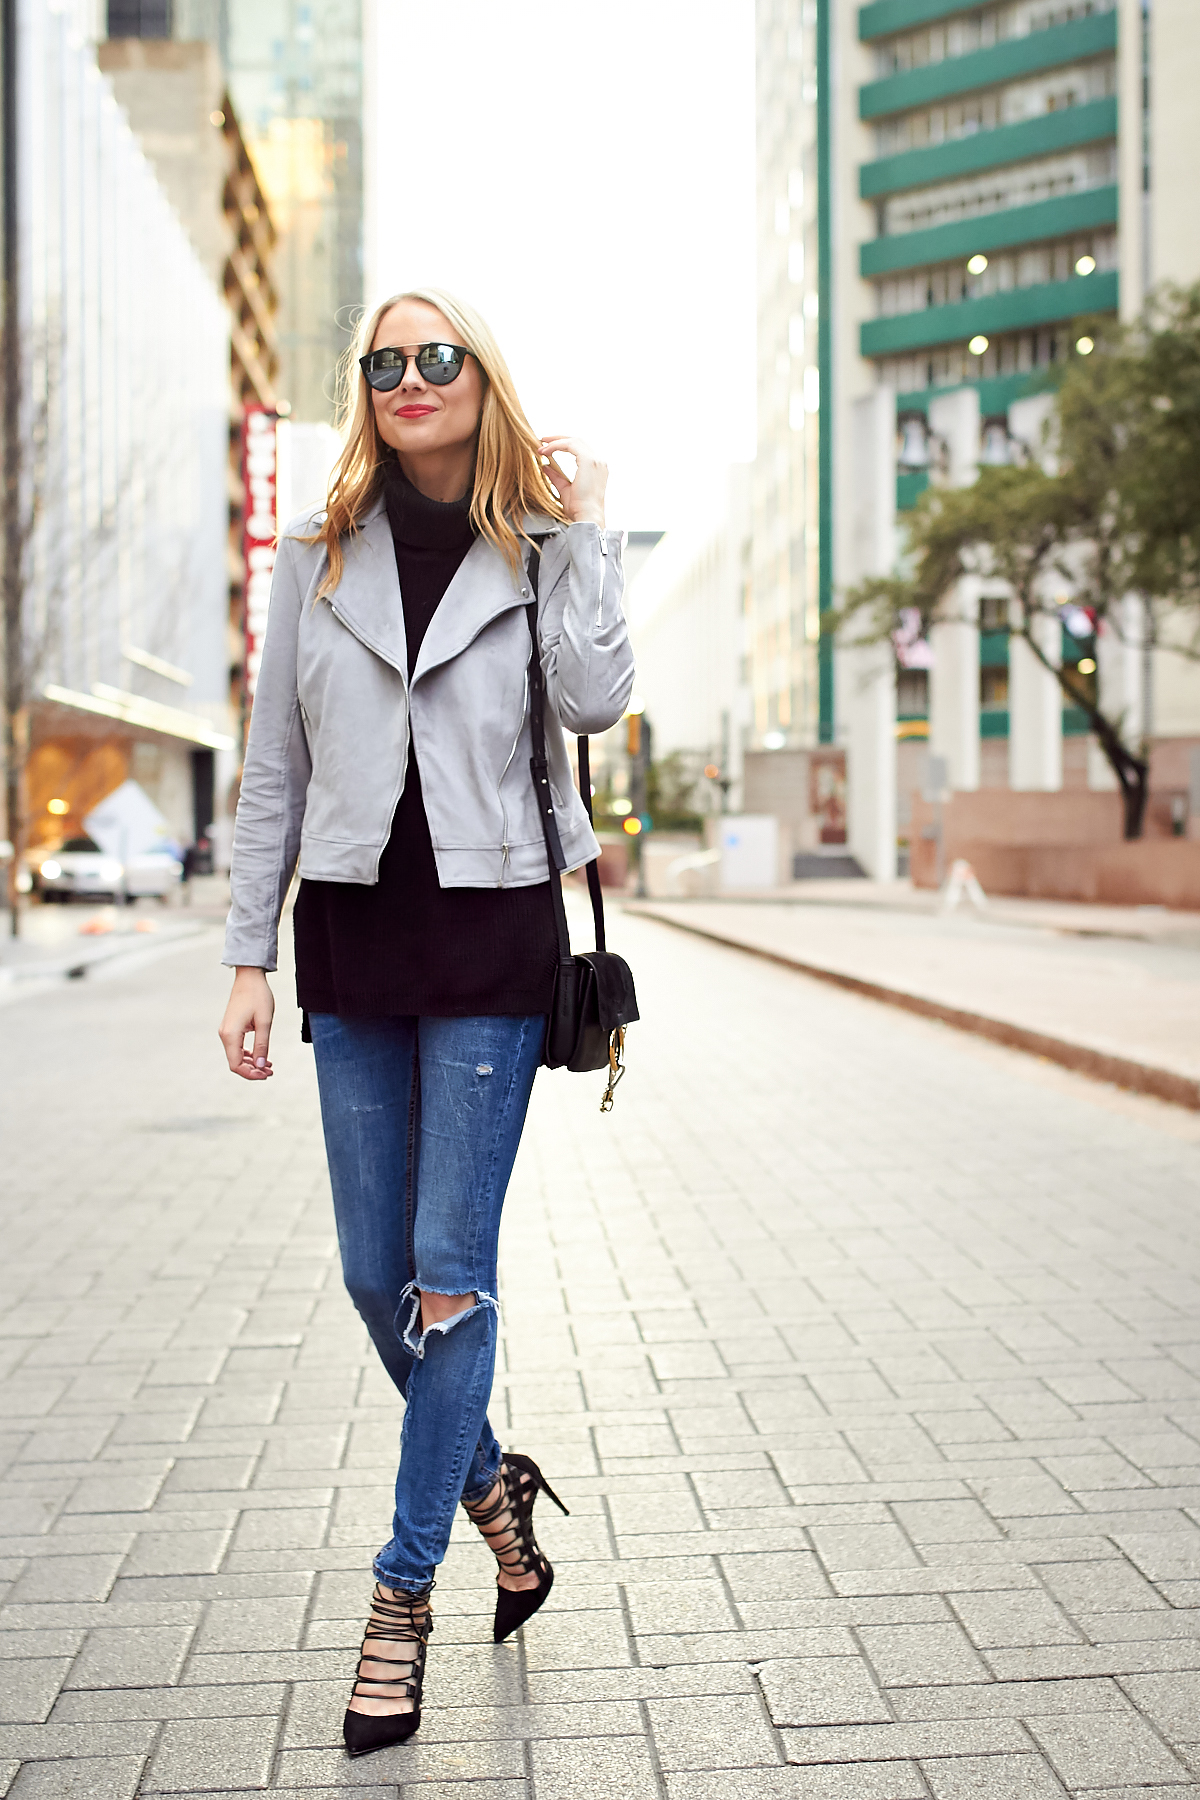 Fall Outfit, Grey Suede Moto Jacket, Black Turtleneck Sweater, Denim Ripped Skinny Jeans, Aquazzura Amazon Black Pumps, Chloe Faye Handbag